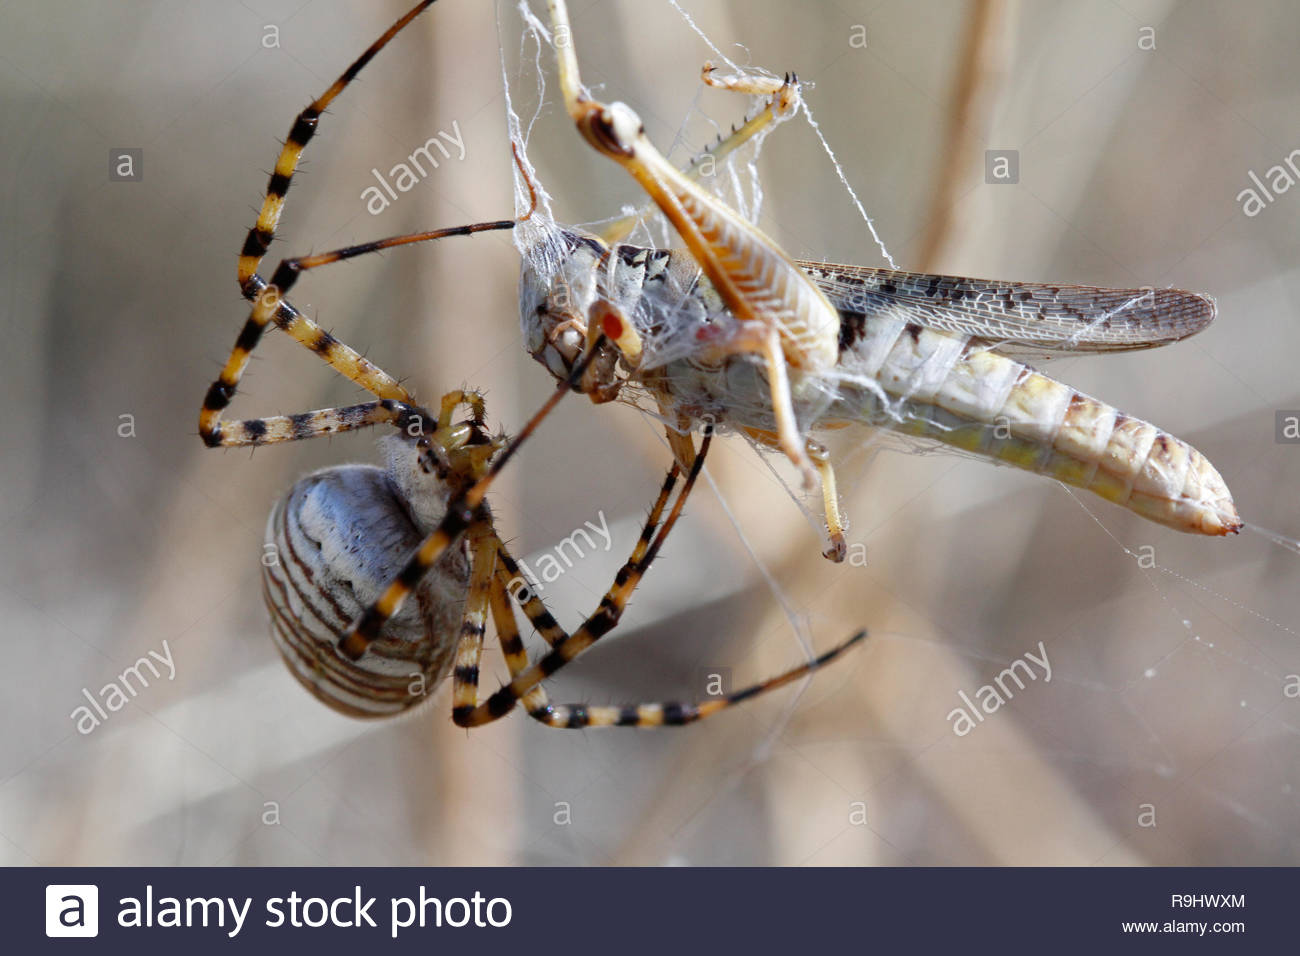 Banded garden spider (Argiope trifasciata) in web wrapping grasshopper, American Prairie Reserve, Eastern Montana, USA - Stock Image